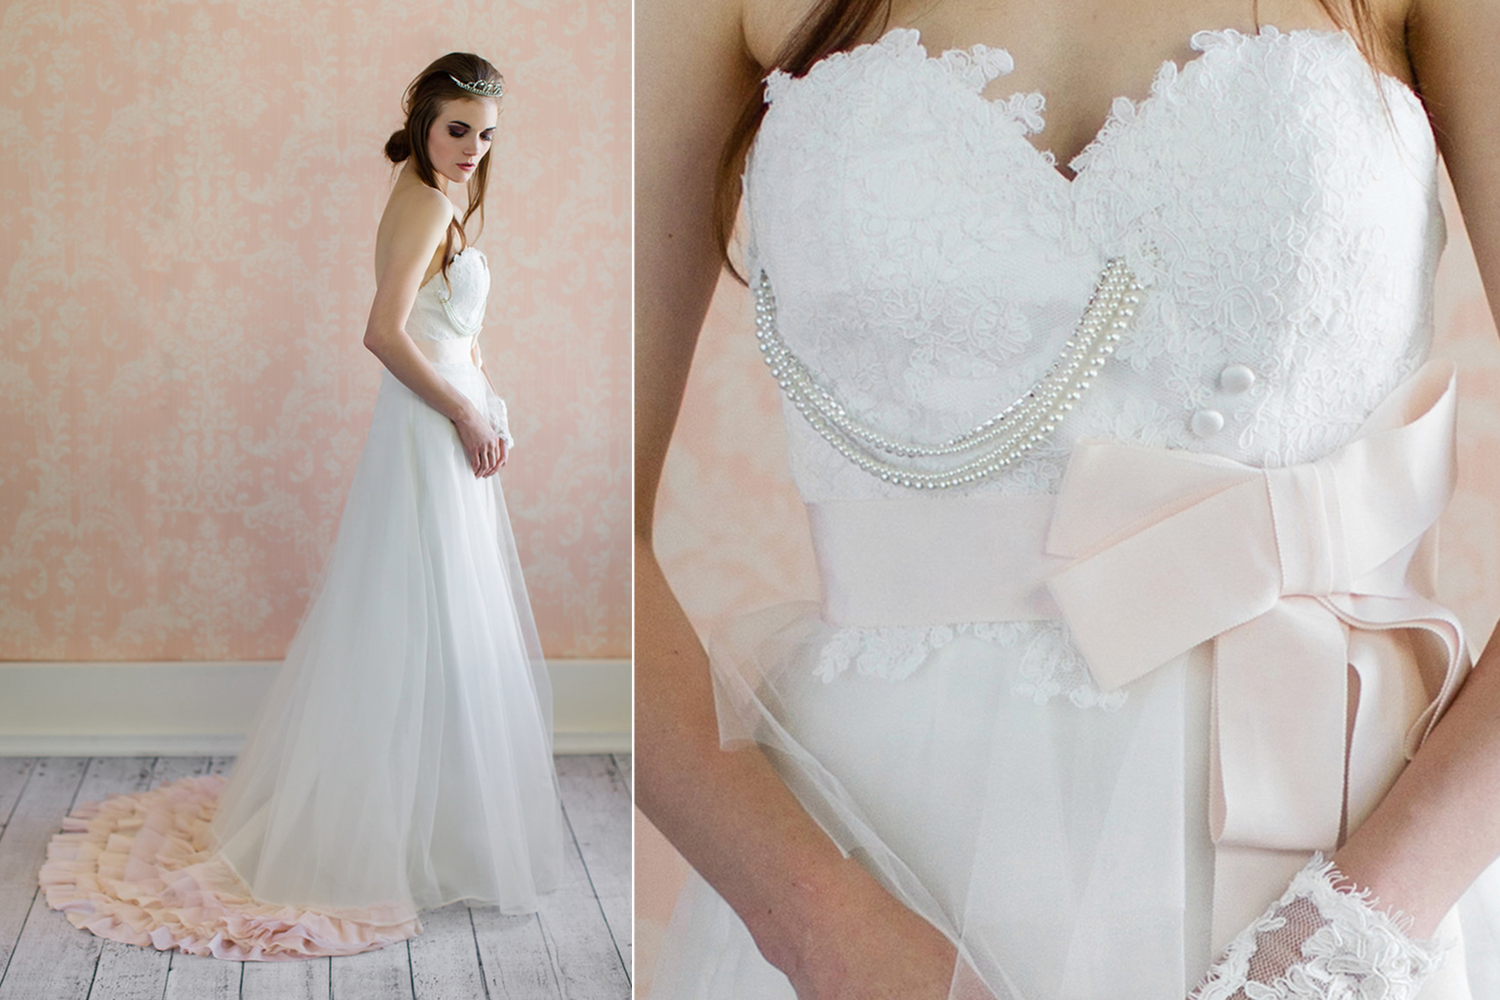 Blush Pink Lace Wedding Dress Viewing Gallery